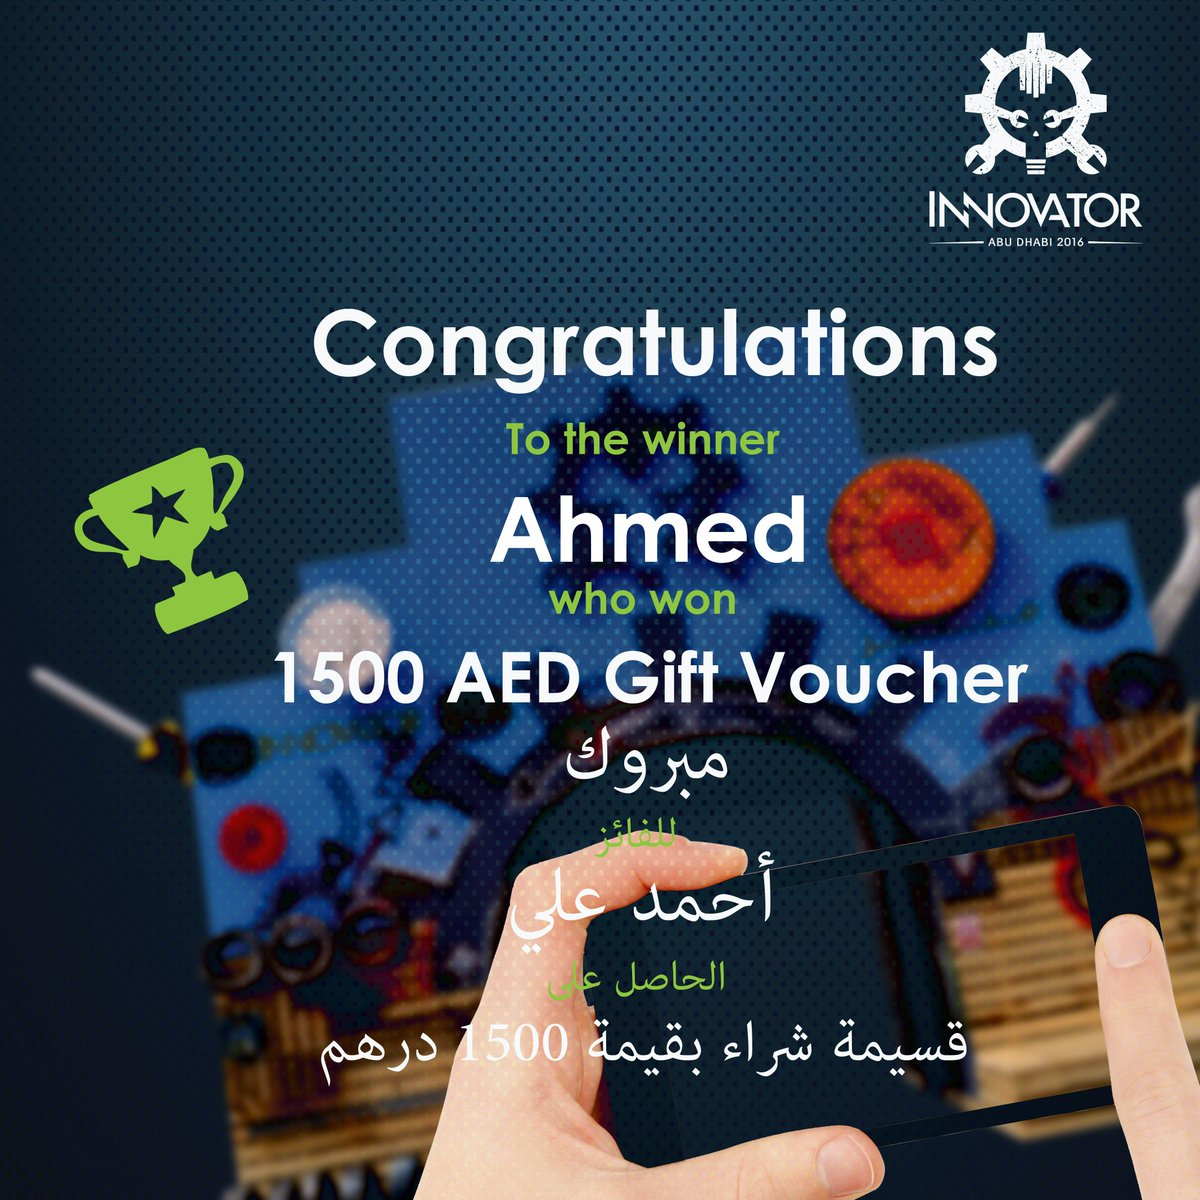 Congratulations to the winner Ahmed Ali who participated in our Hashtag Competition and won a 1500AED gift Voucher! https://t.co/cKXYBeDPIW